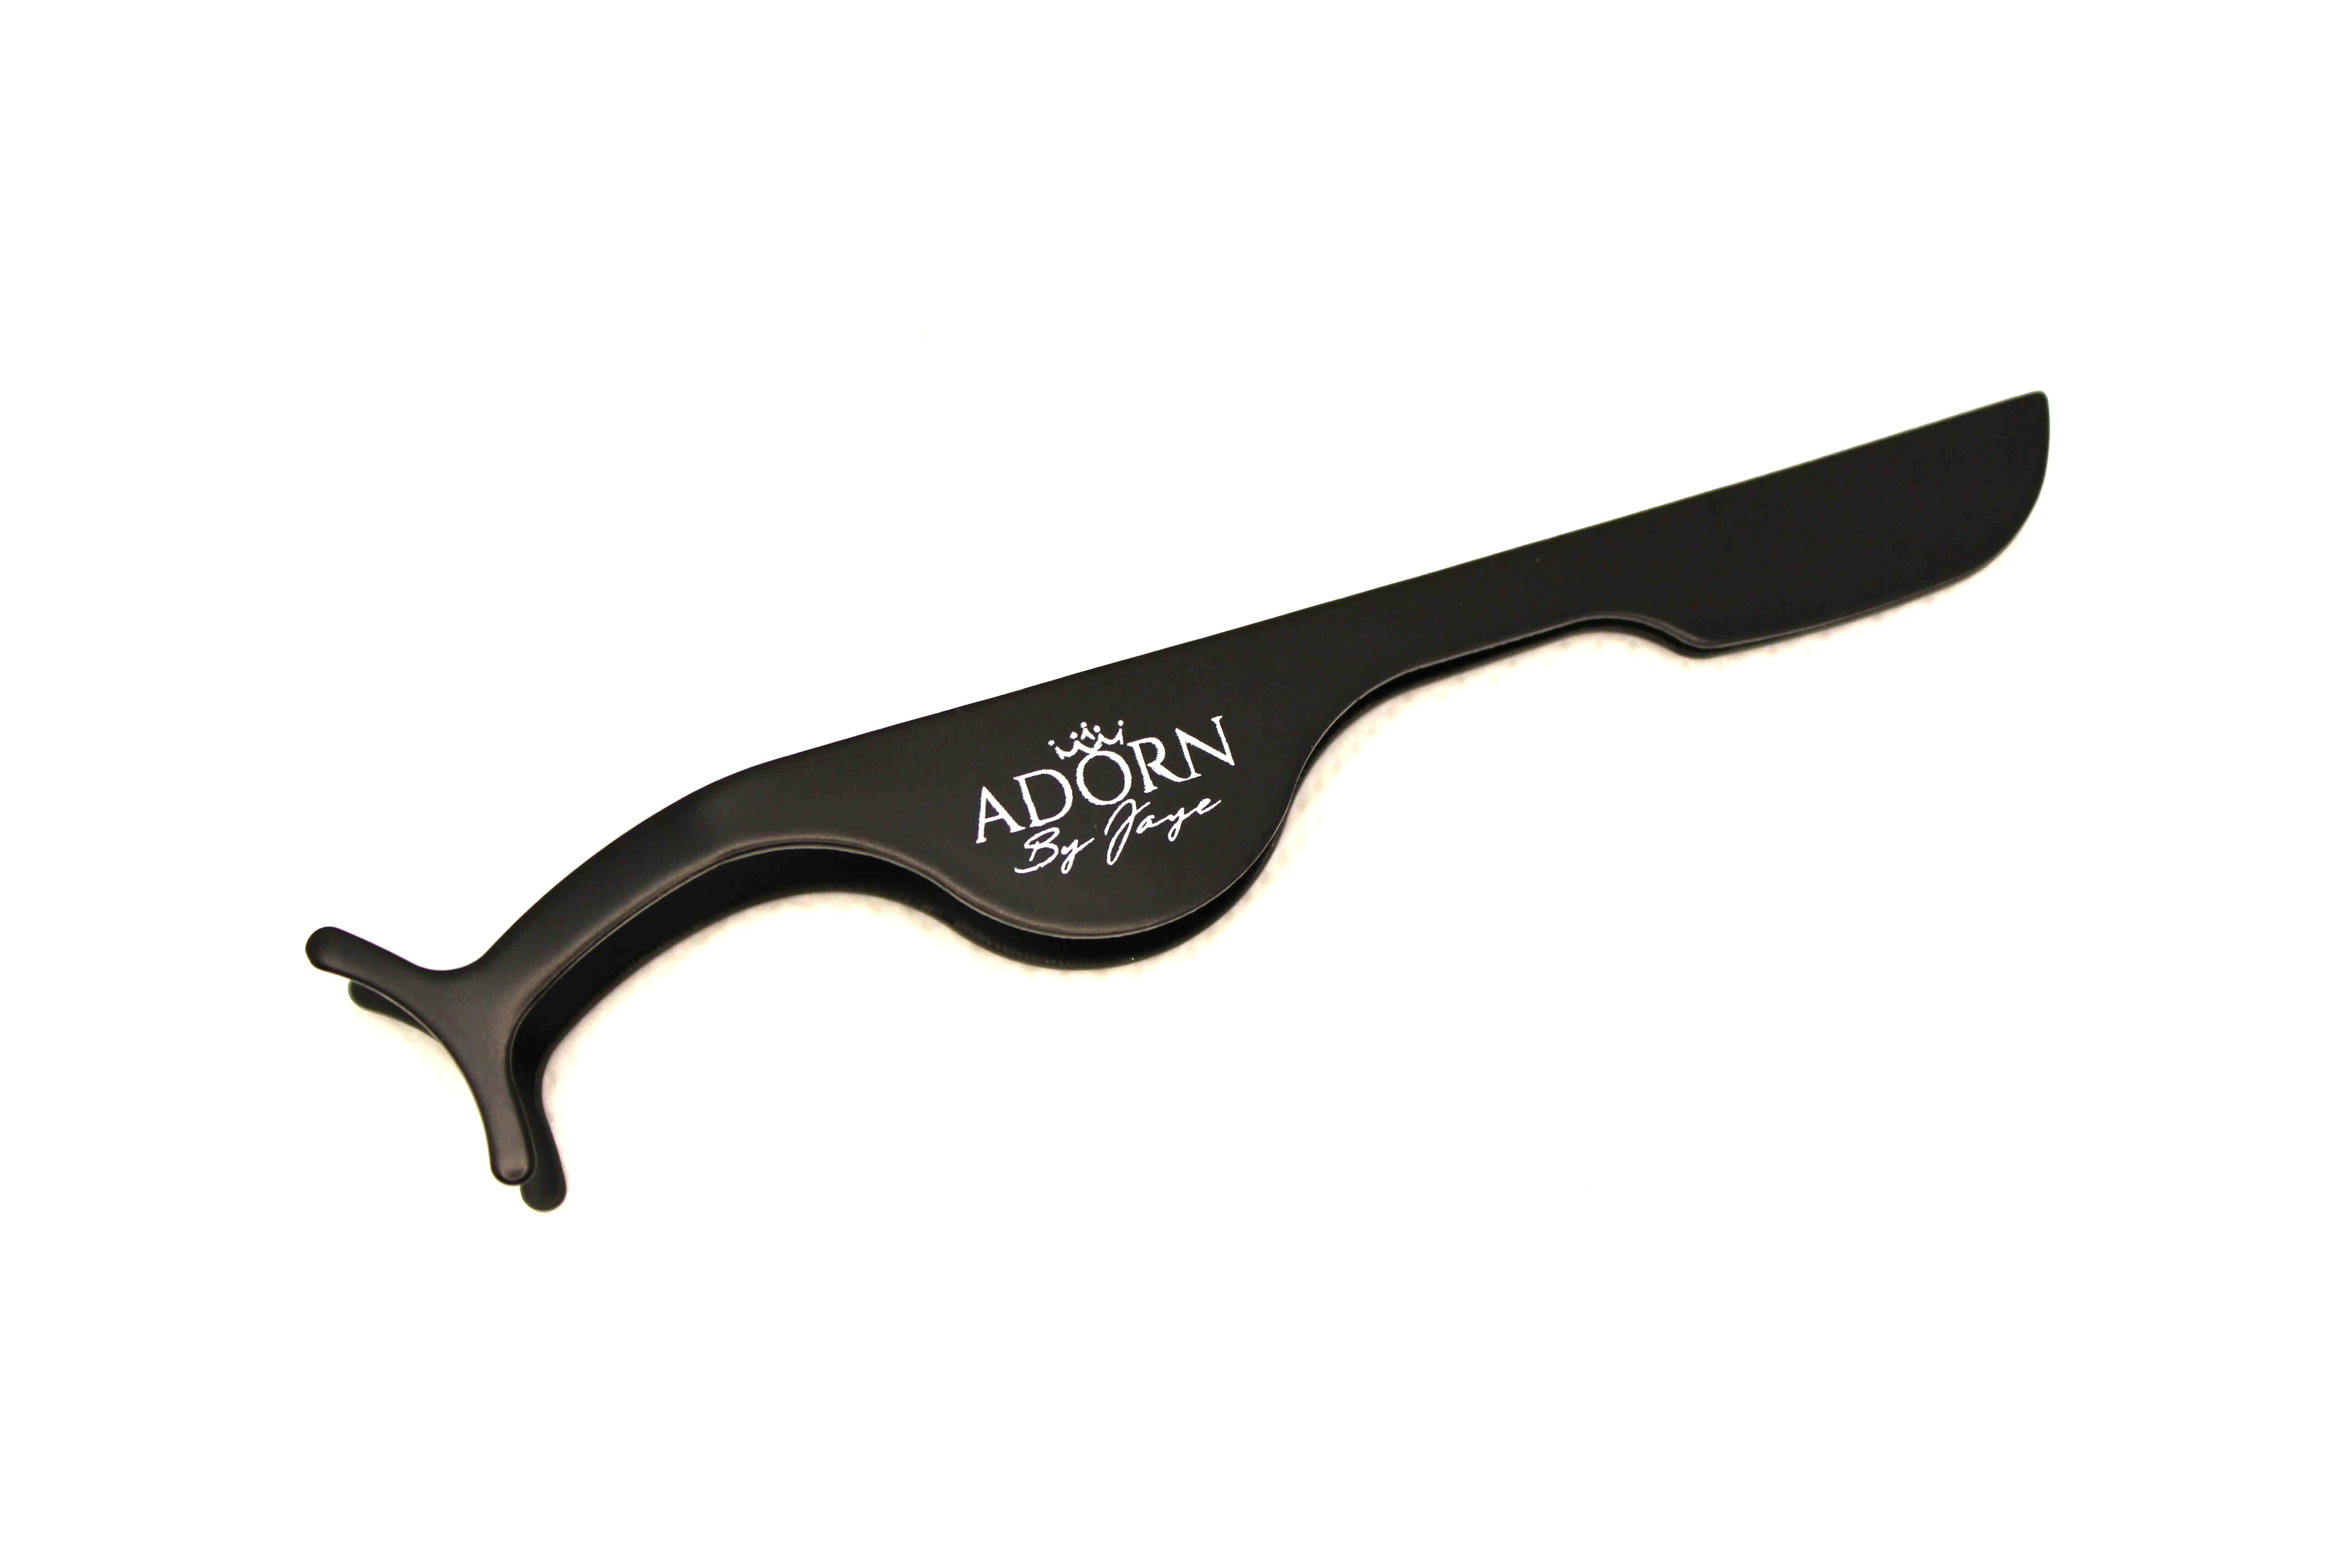 Lash Application Tweezers Stainless Steel - ADORN by Jaye